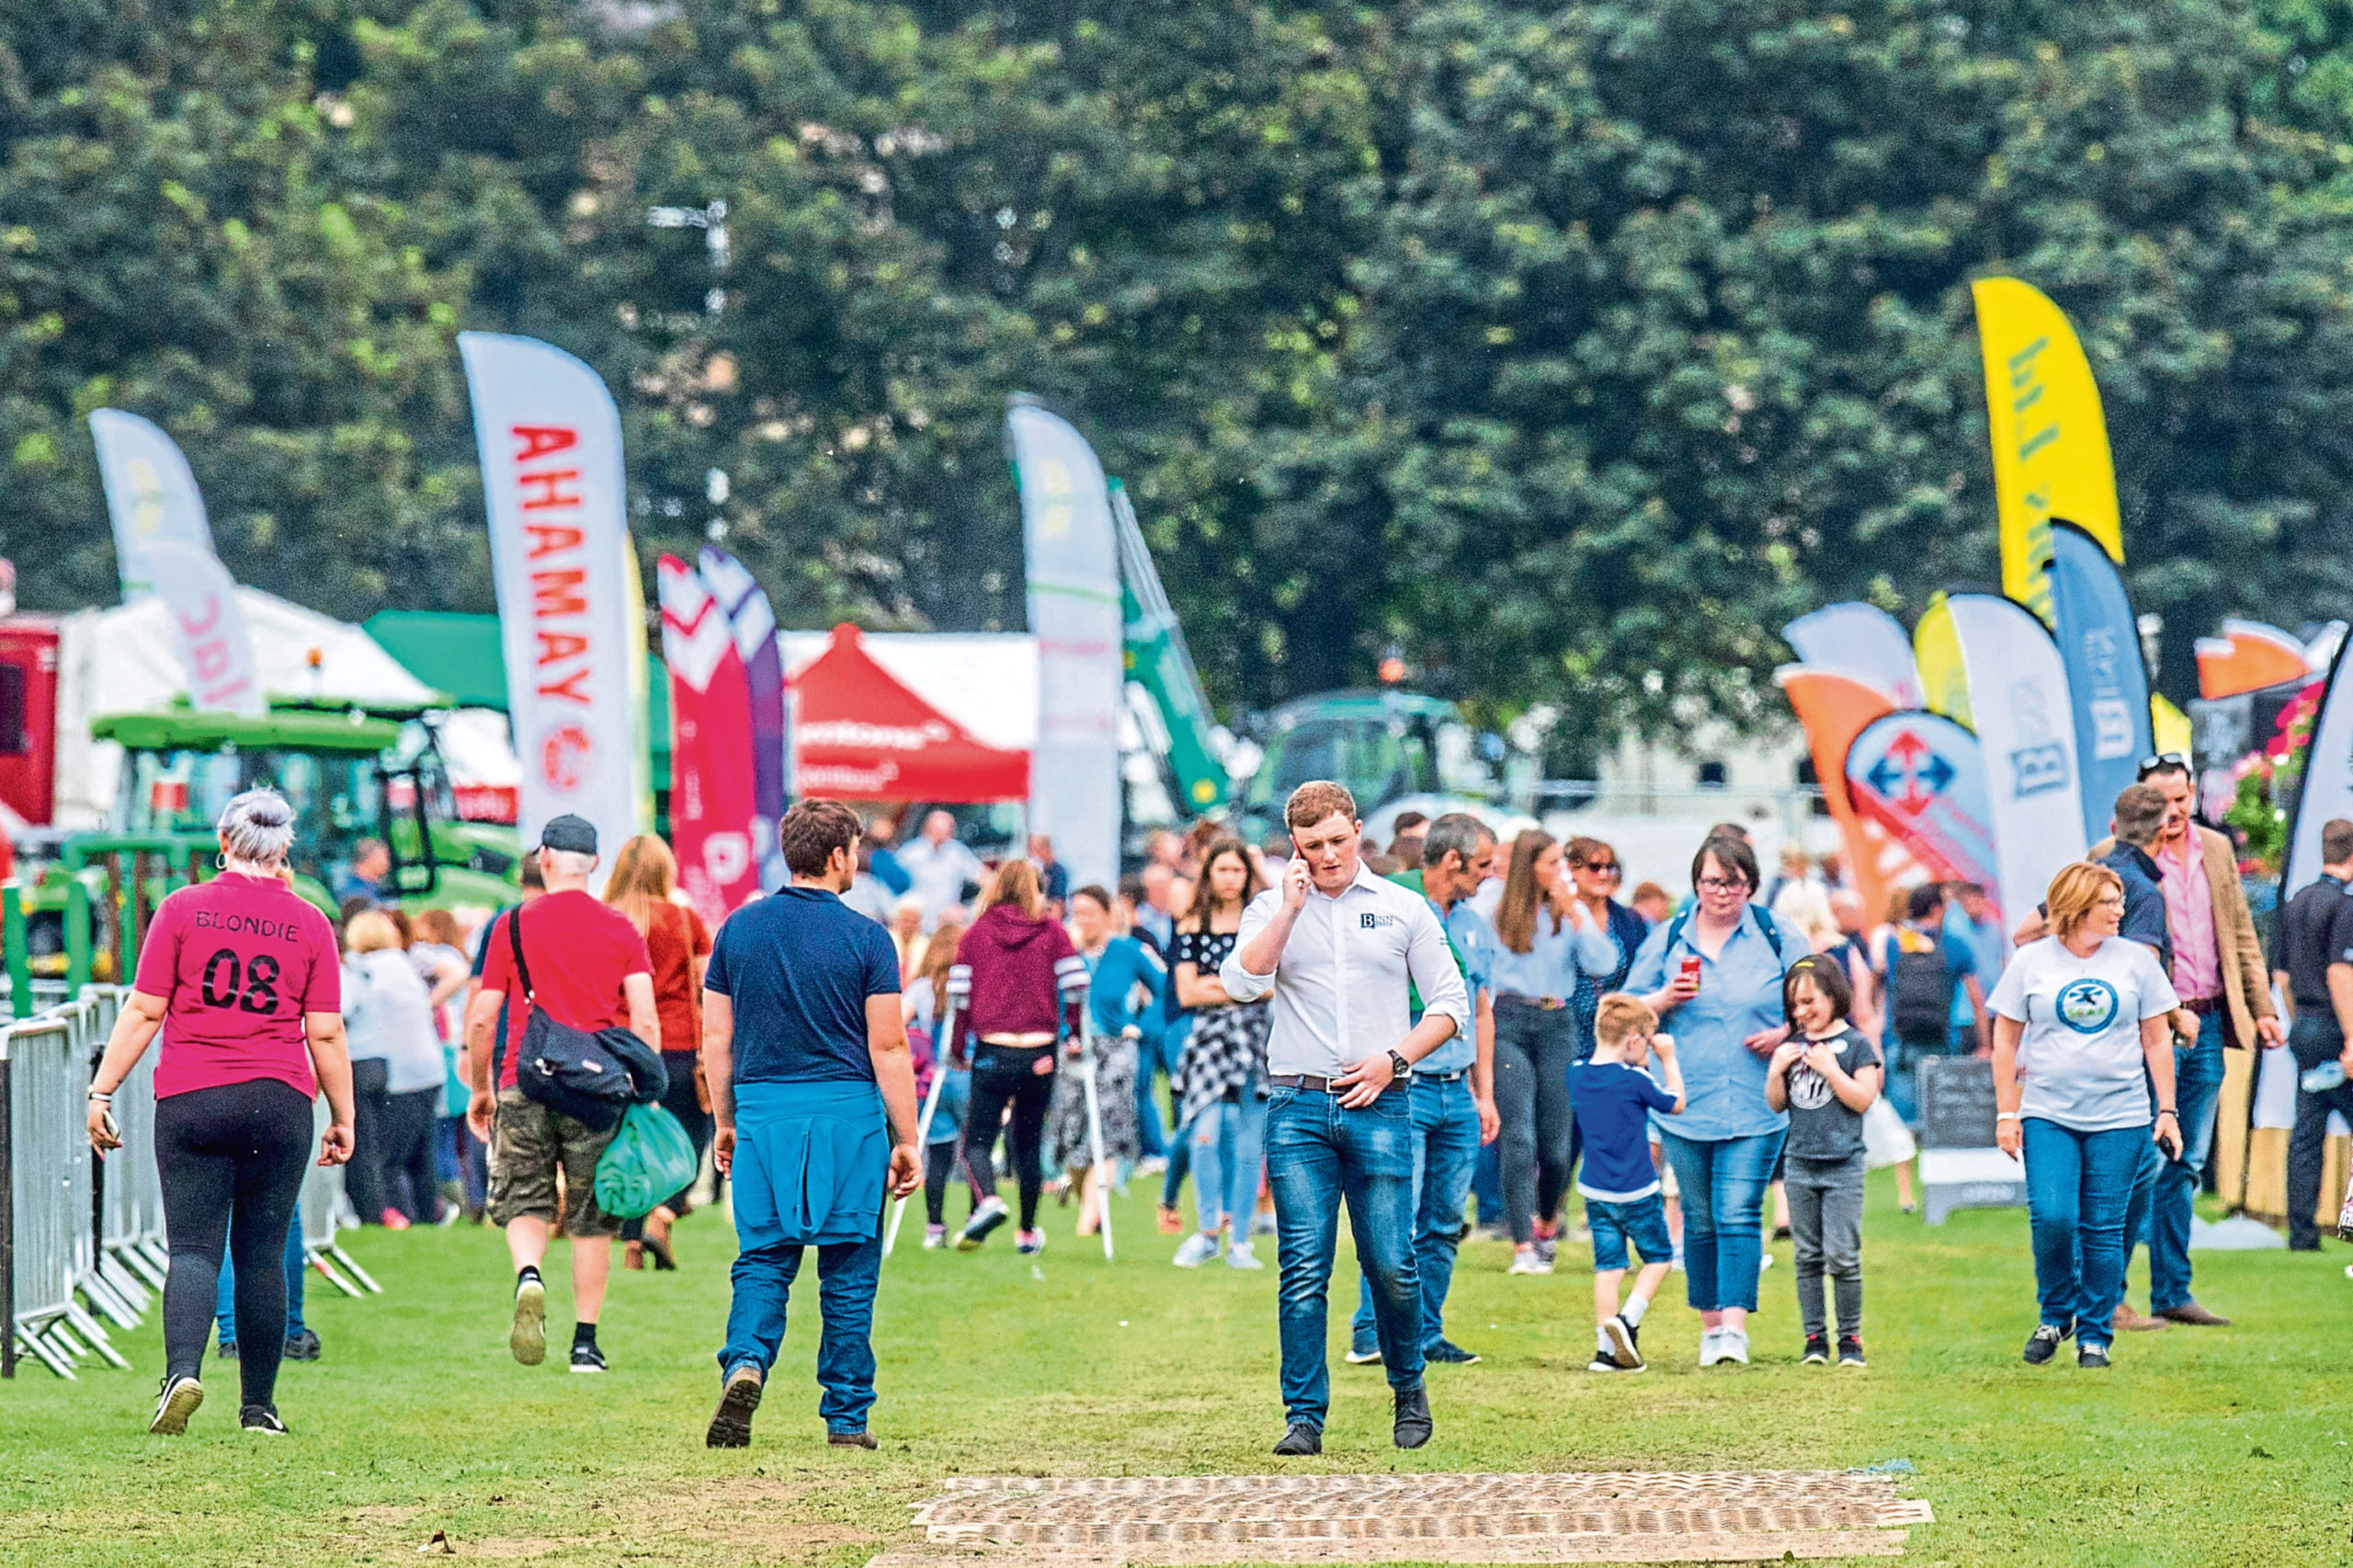 The virtual show aims to bring members of the farming community together in the way they usually would at summer shows.